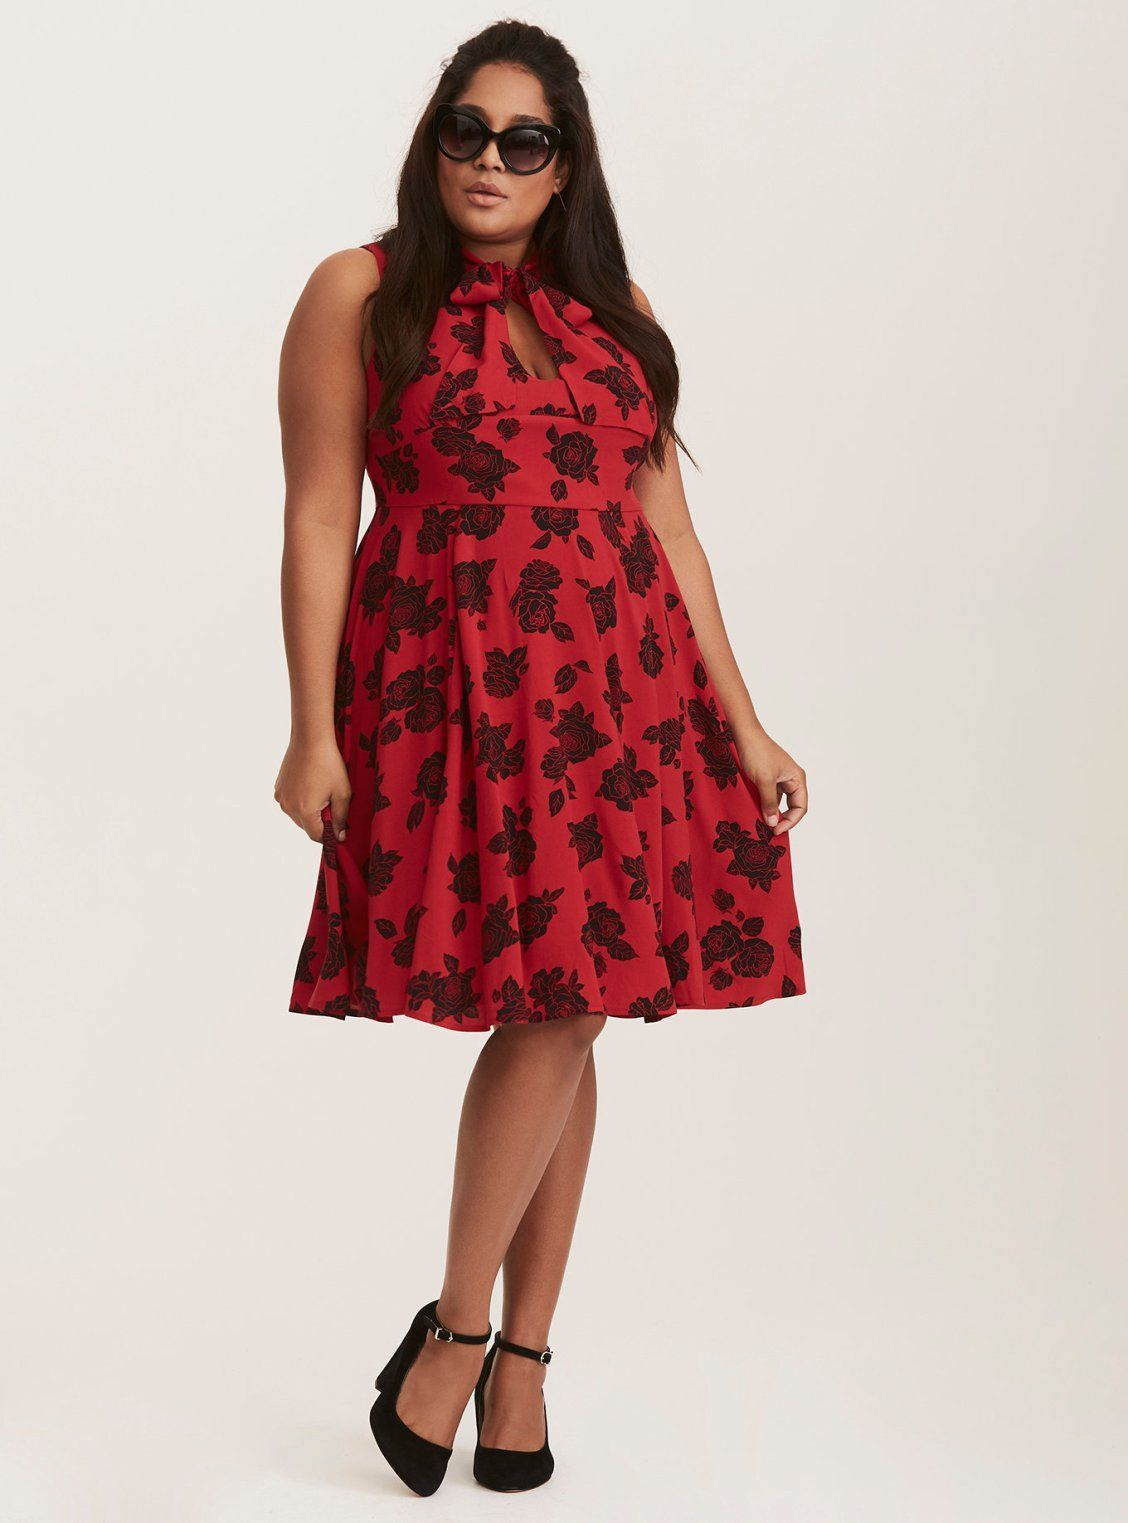 62fcee9a38991 Retro Chic Red   Black Floral Print Tie Neck Skater Dress   Torrid   Plus  Size   Holiday